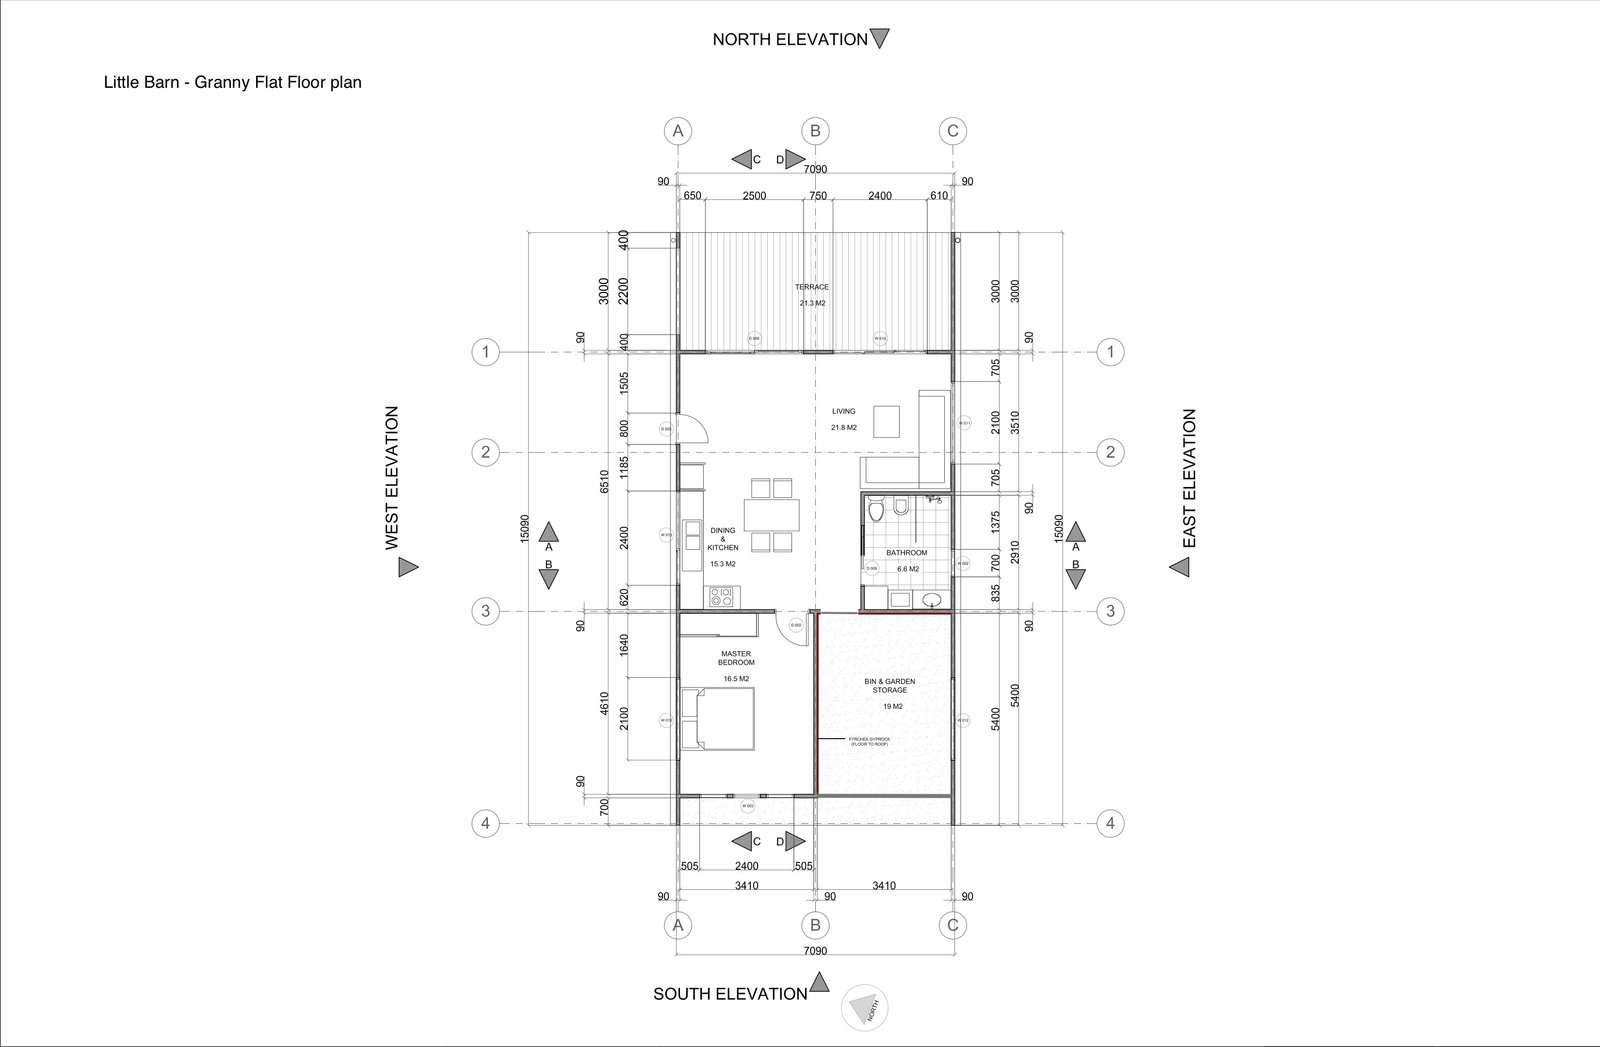 Floor plan drawing for the small house  Photo 19 of 19 in Two Barn-Like Volumes Make Up This Low-Maintenance Australian Home